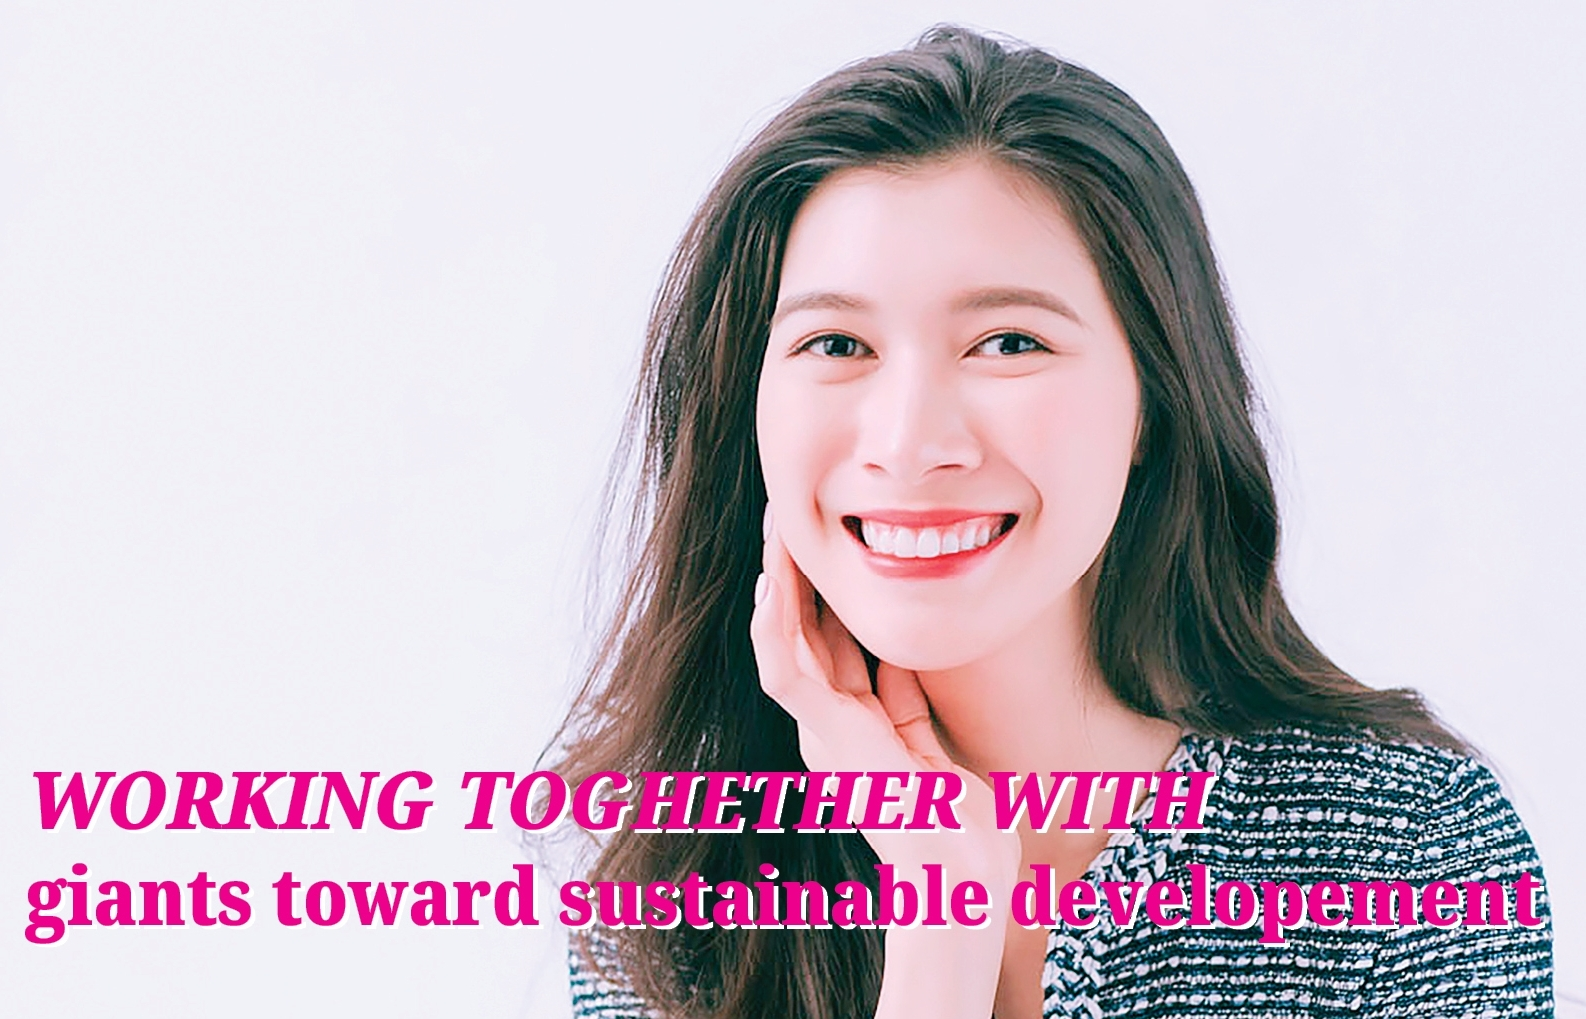 Working together with giants toward sustainable development